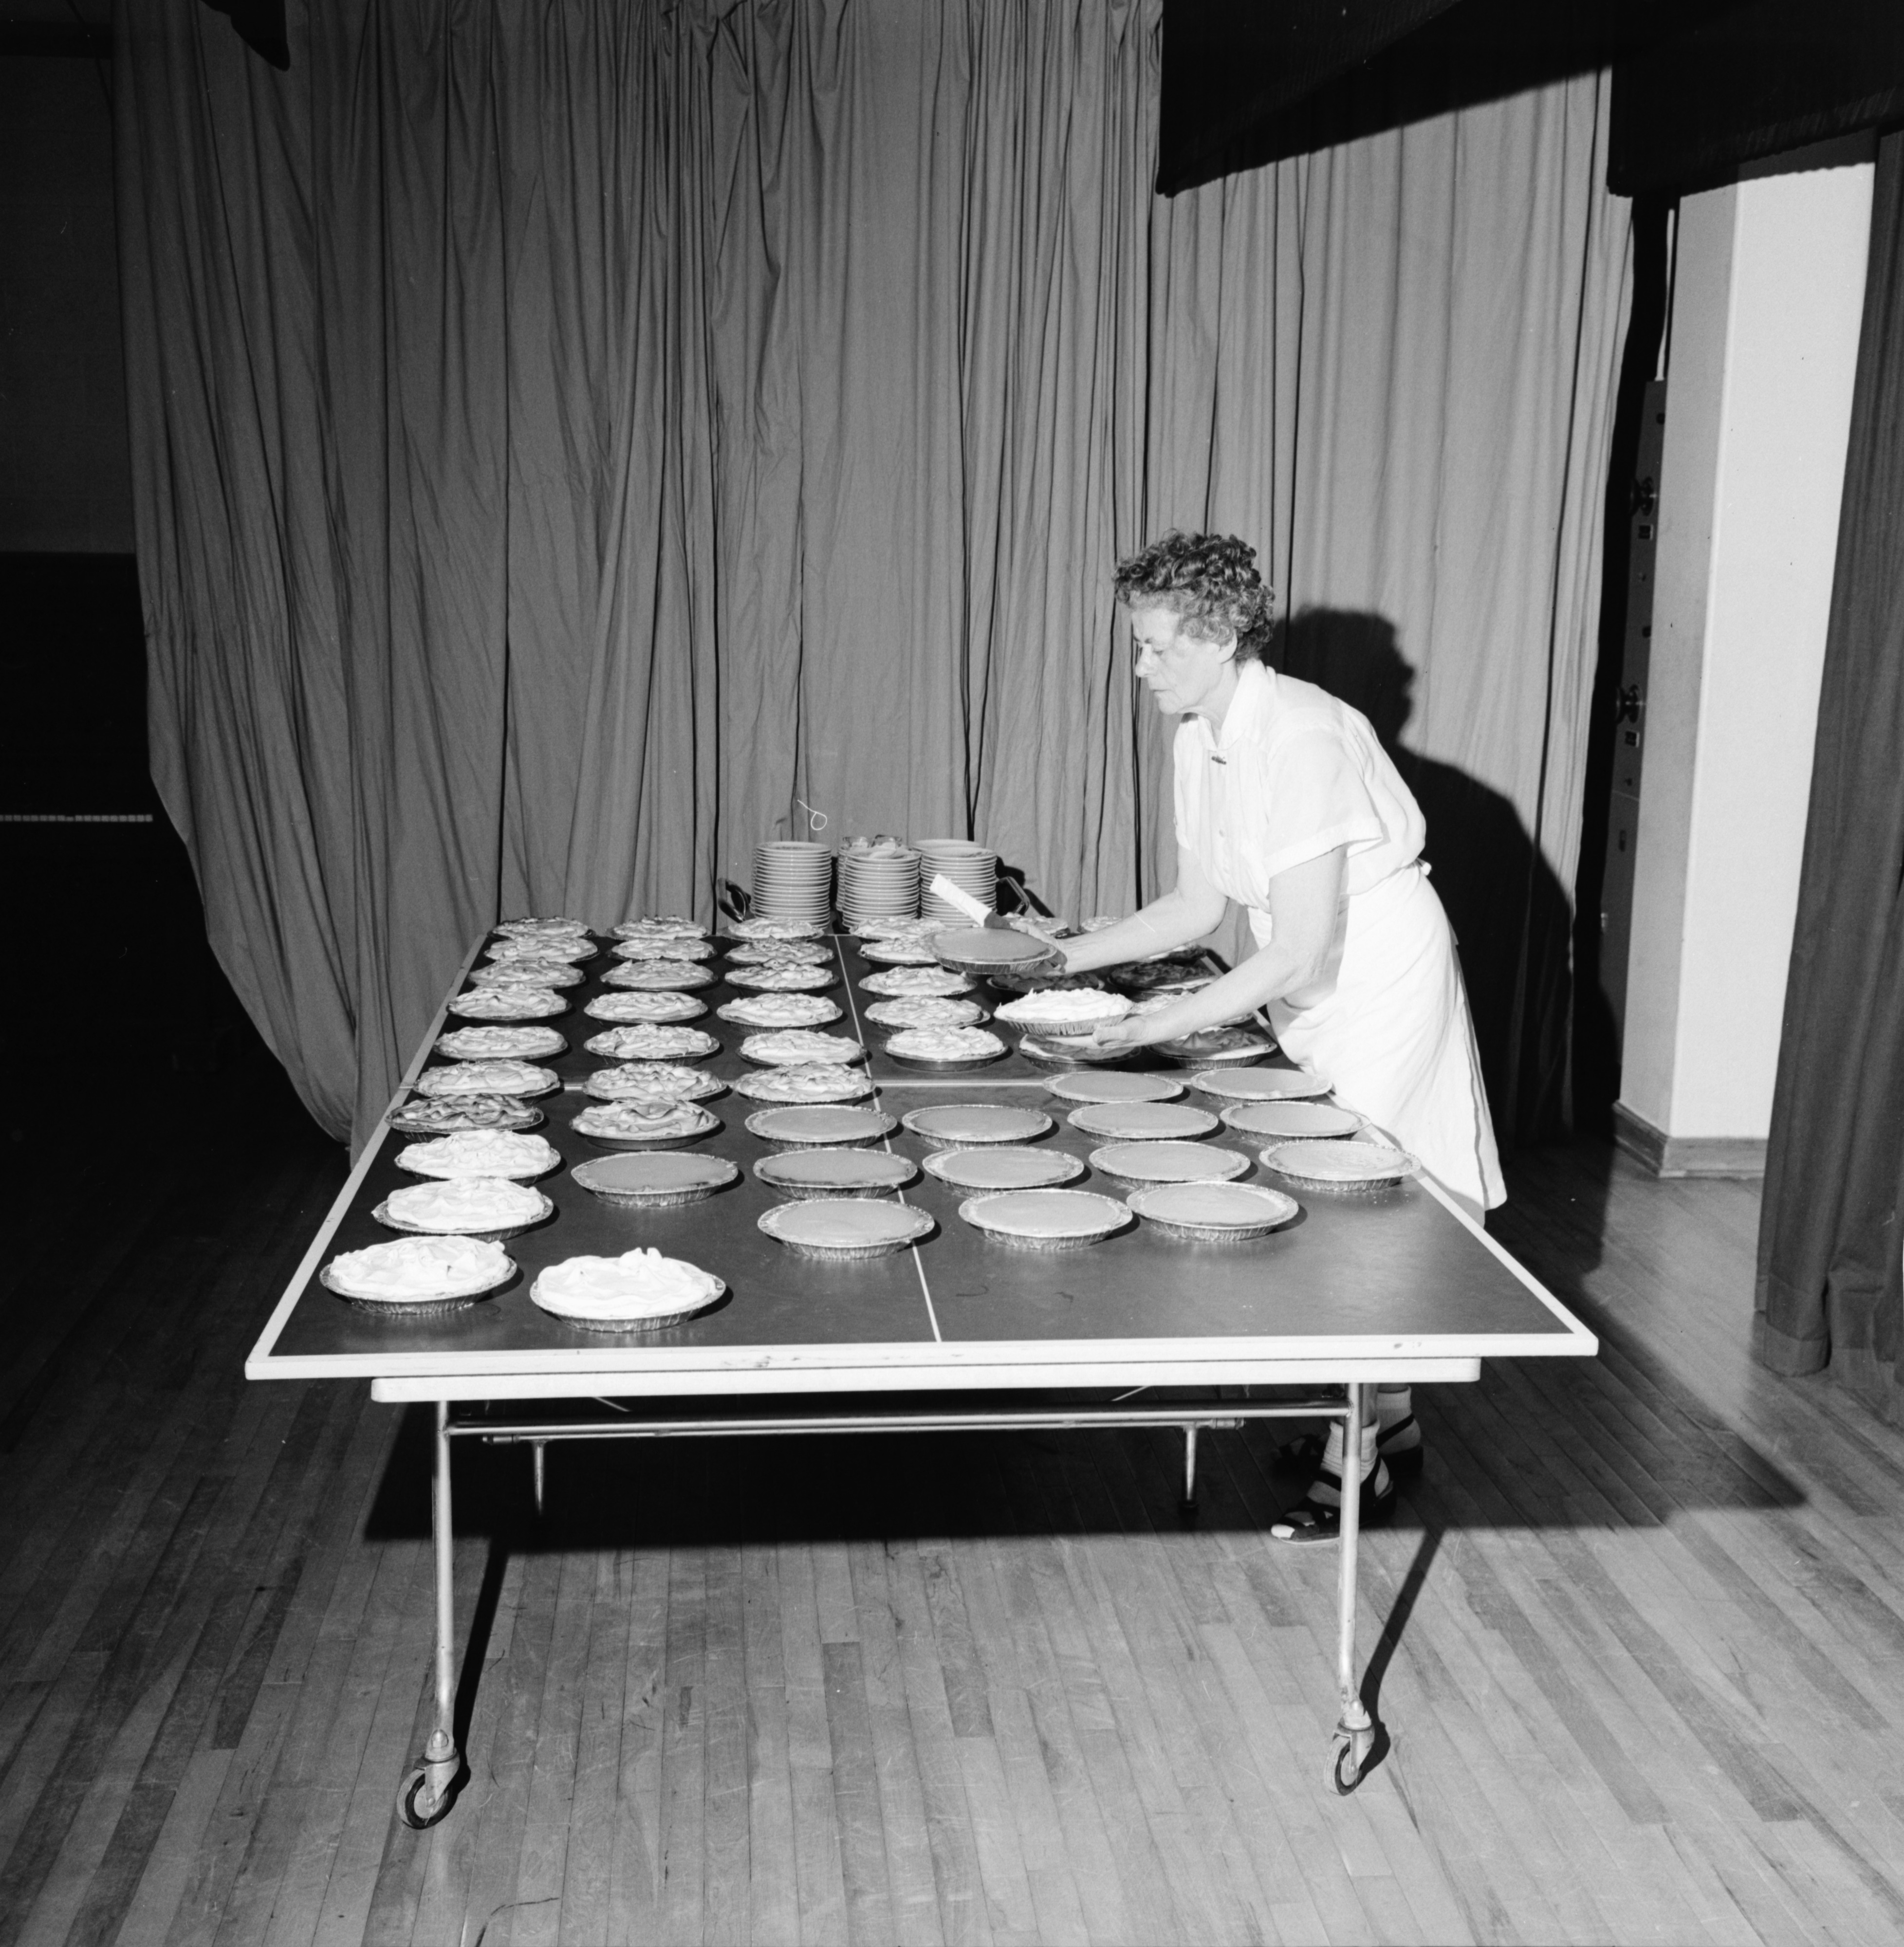 Maria Koehler Bakes 60 Pies for the American Lutheran Church Women's Convention, Zion Lutheran Church, April 1967 image